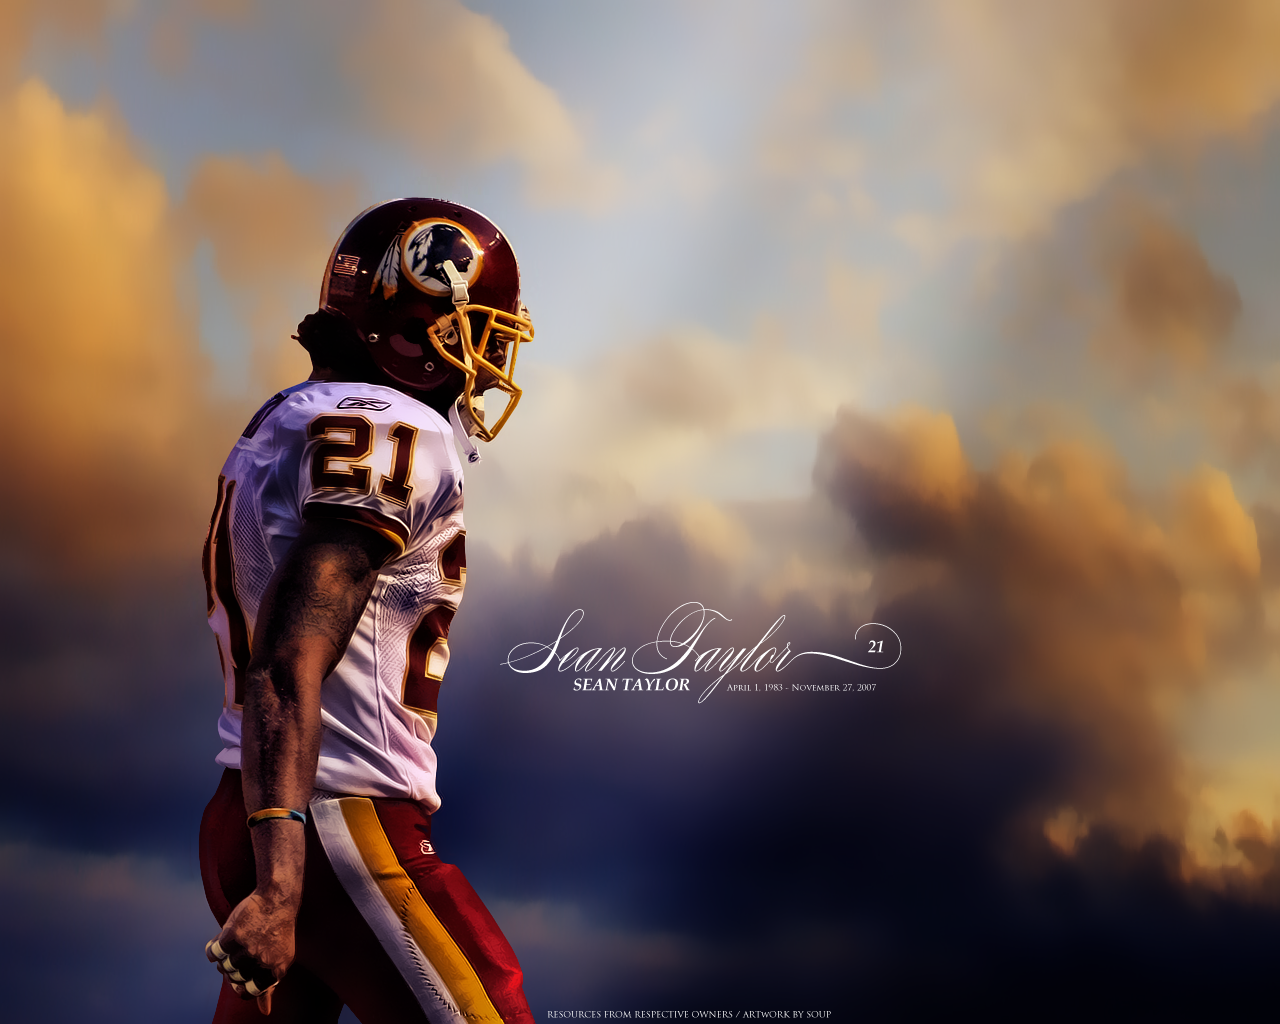 Pictures In High Quality: Redskins by Crystle Standridge, June 18, 2016